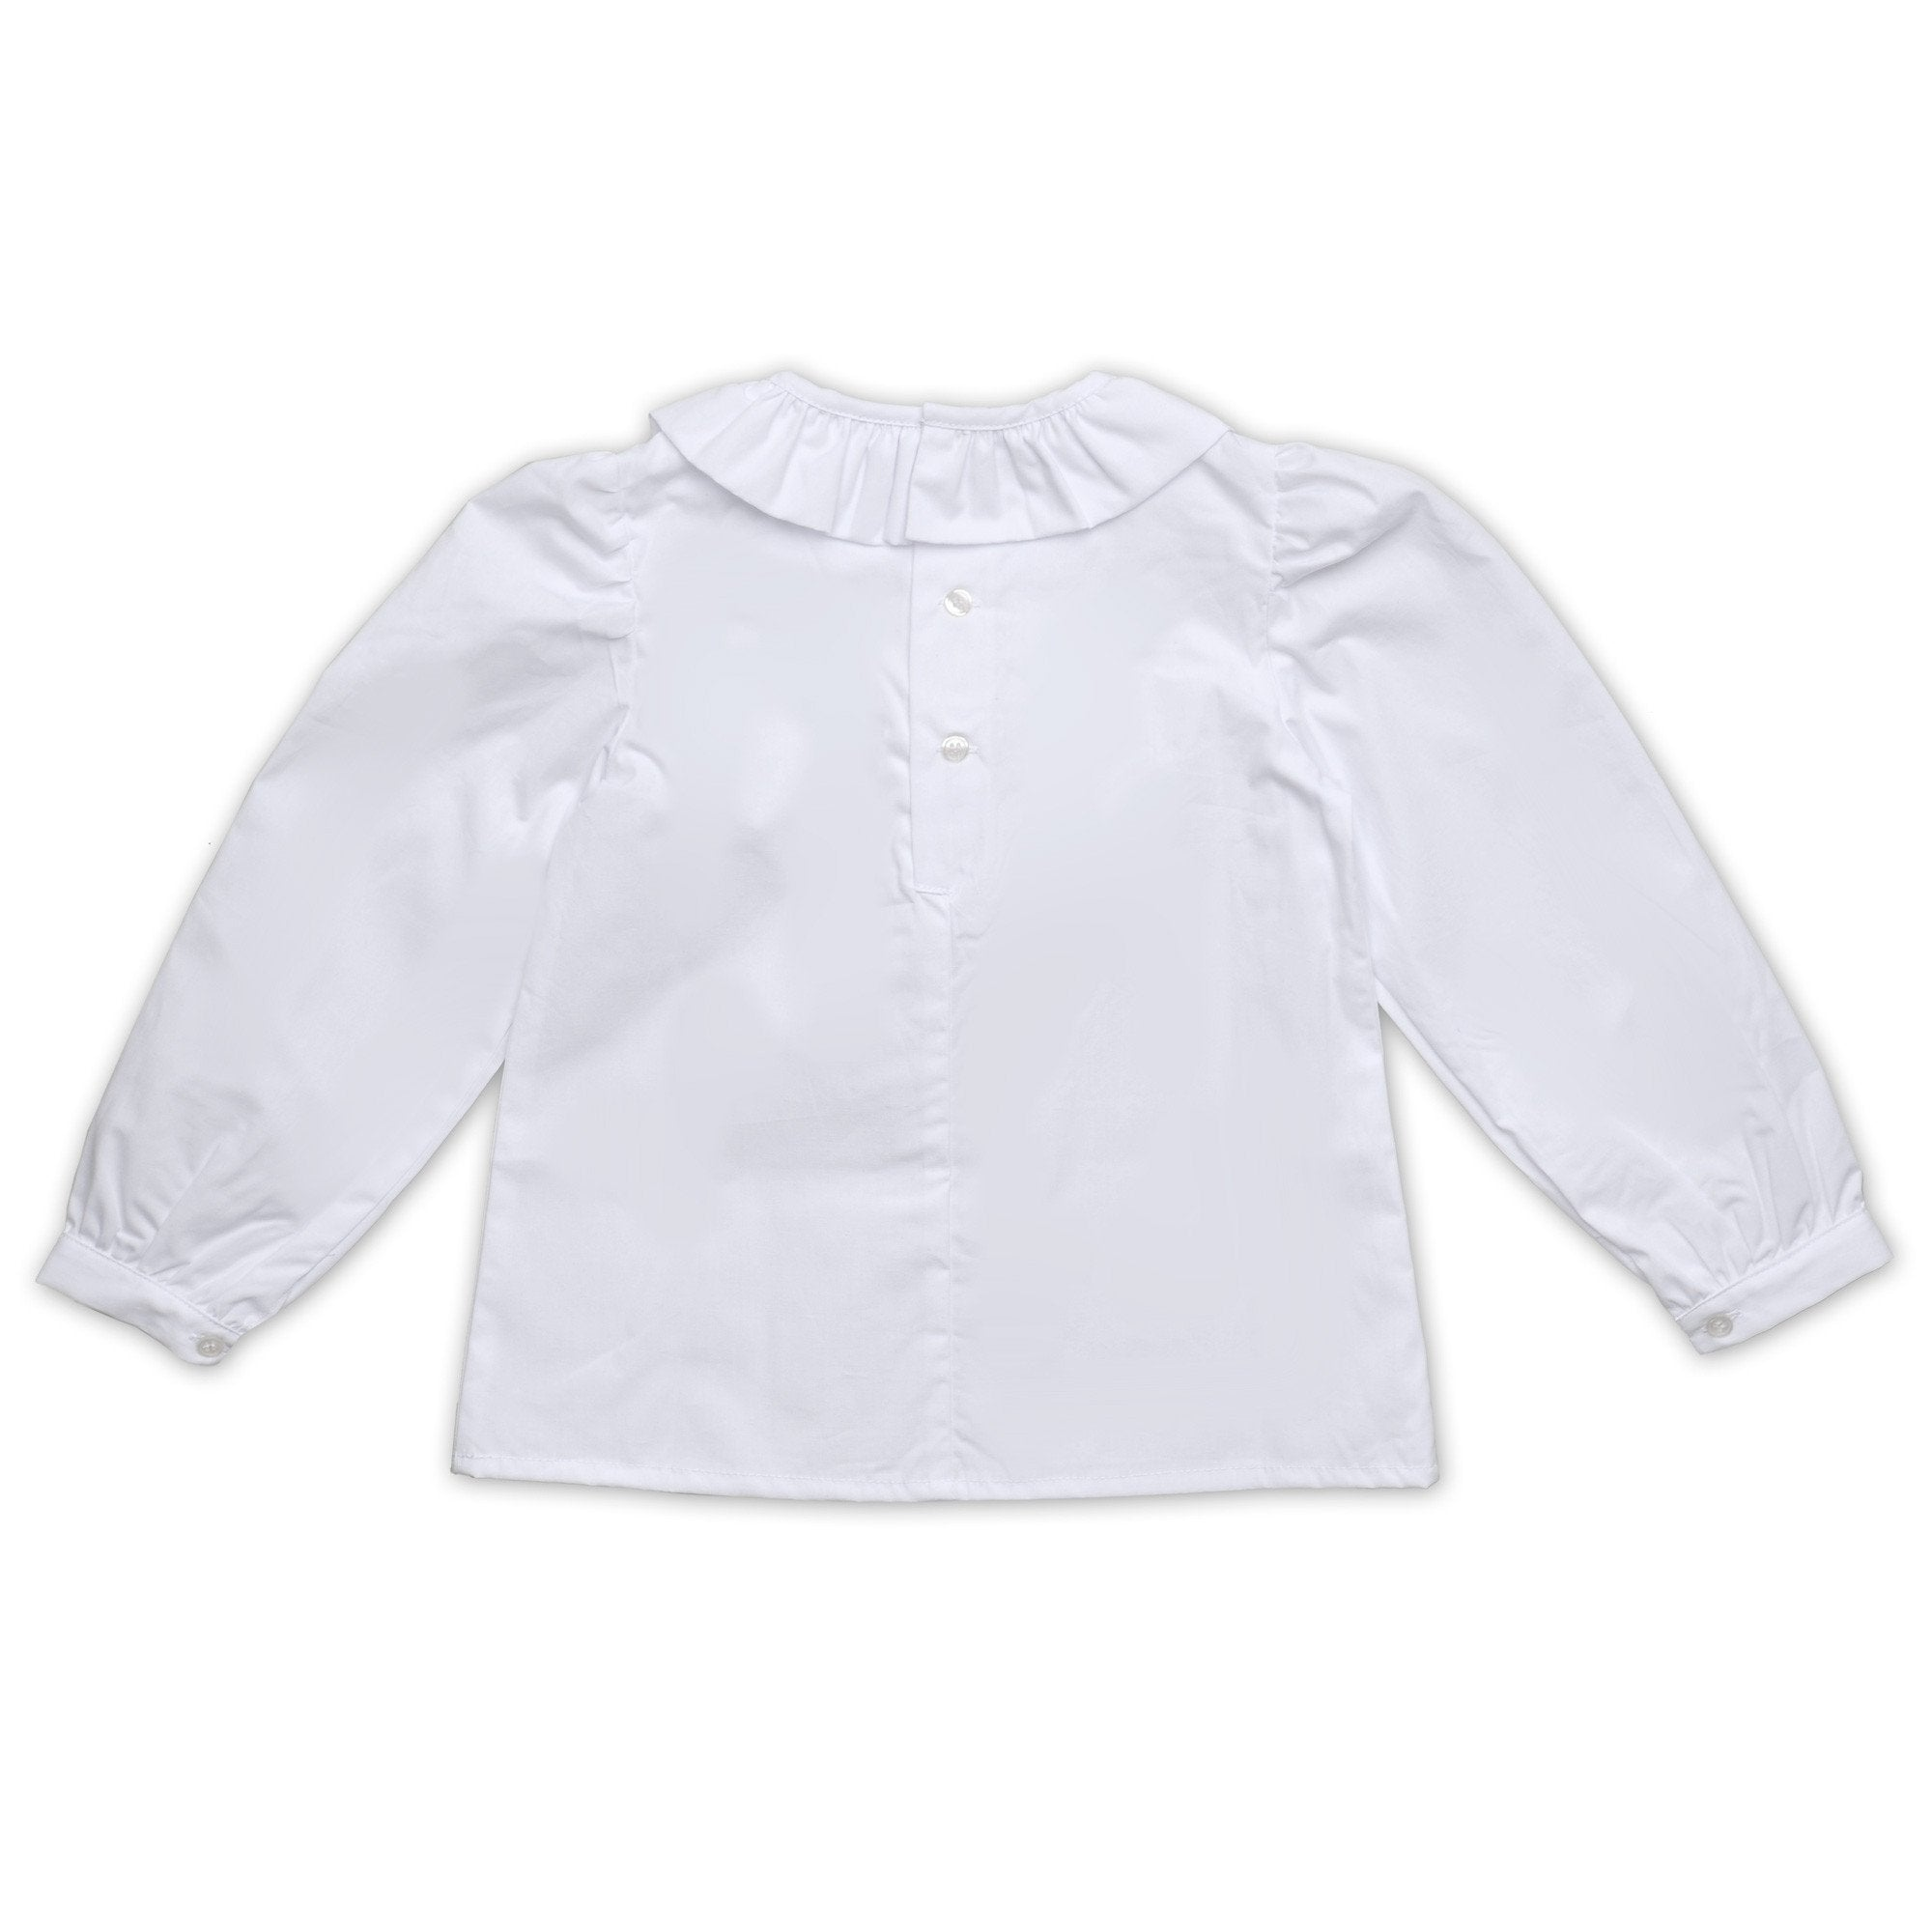 FRILL COLLARED SHIRT IN WHITE